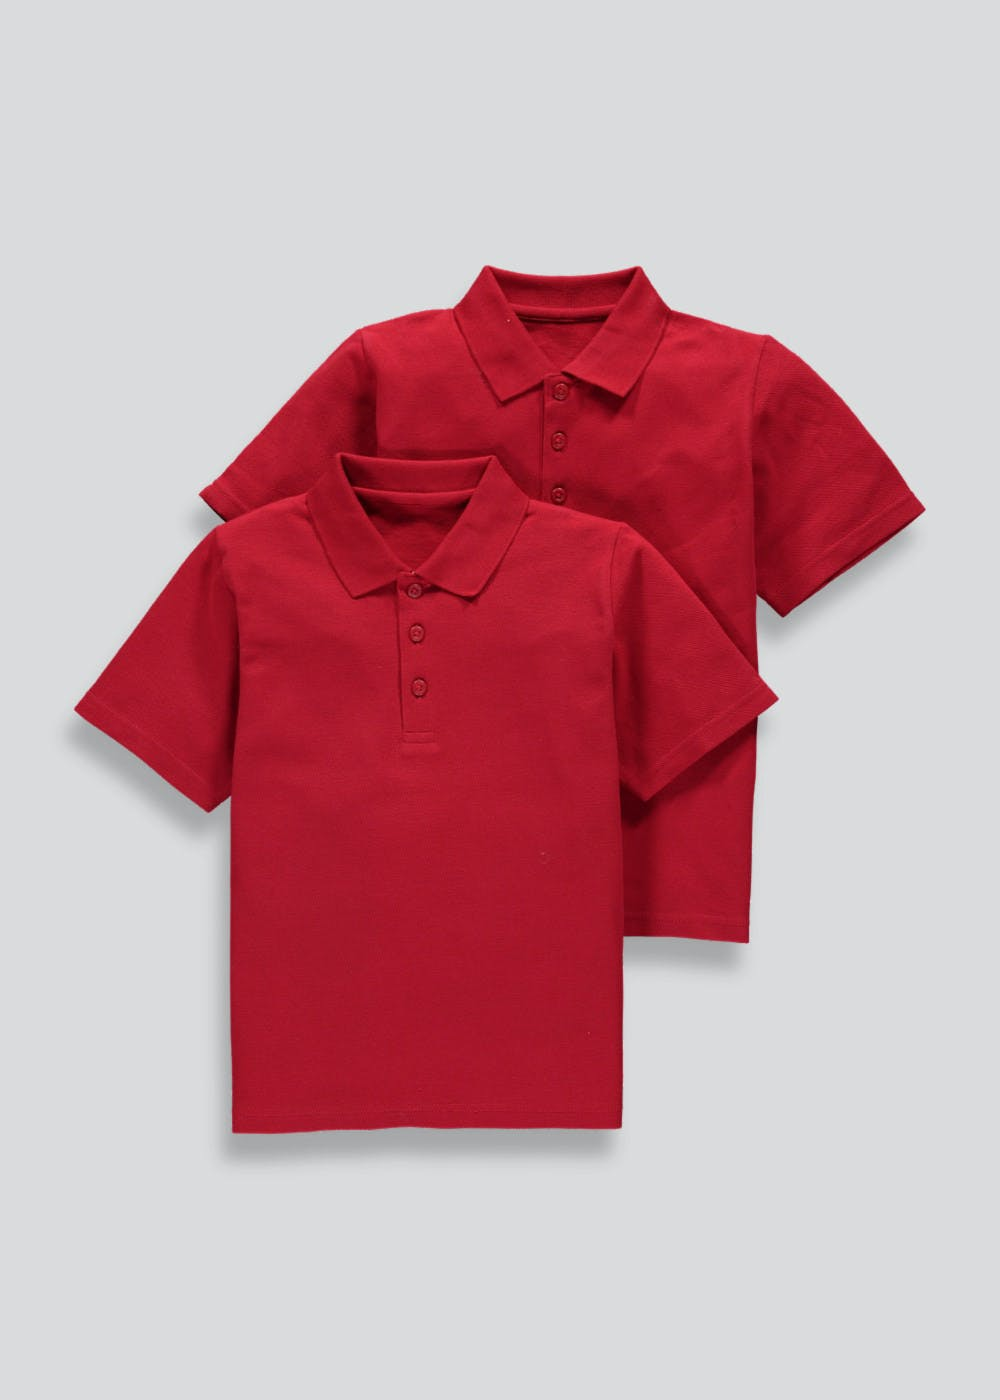 9330d8bc Unisex 2 Pack School Polo Shirts (3-16yrs) – Red – Matalan